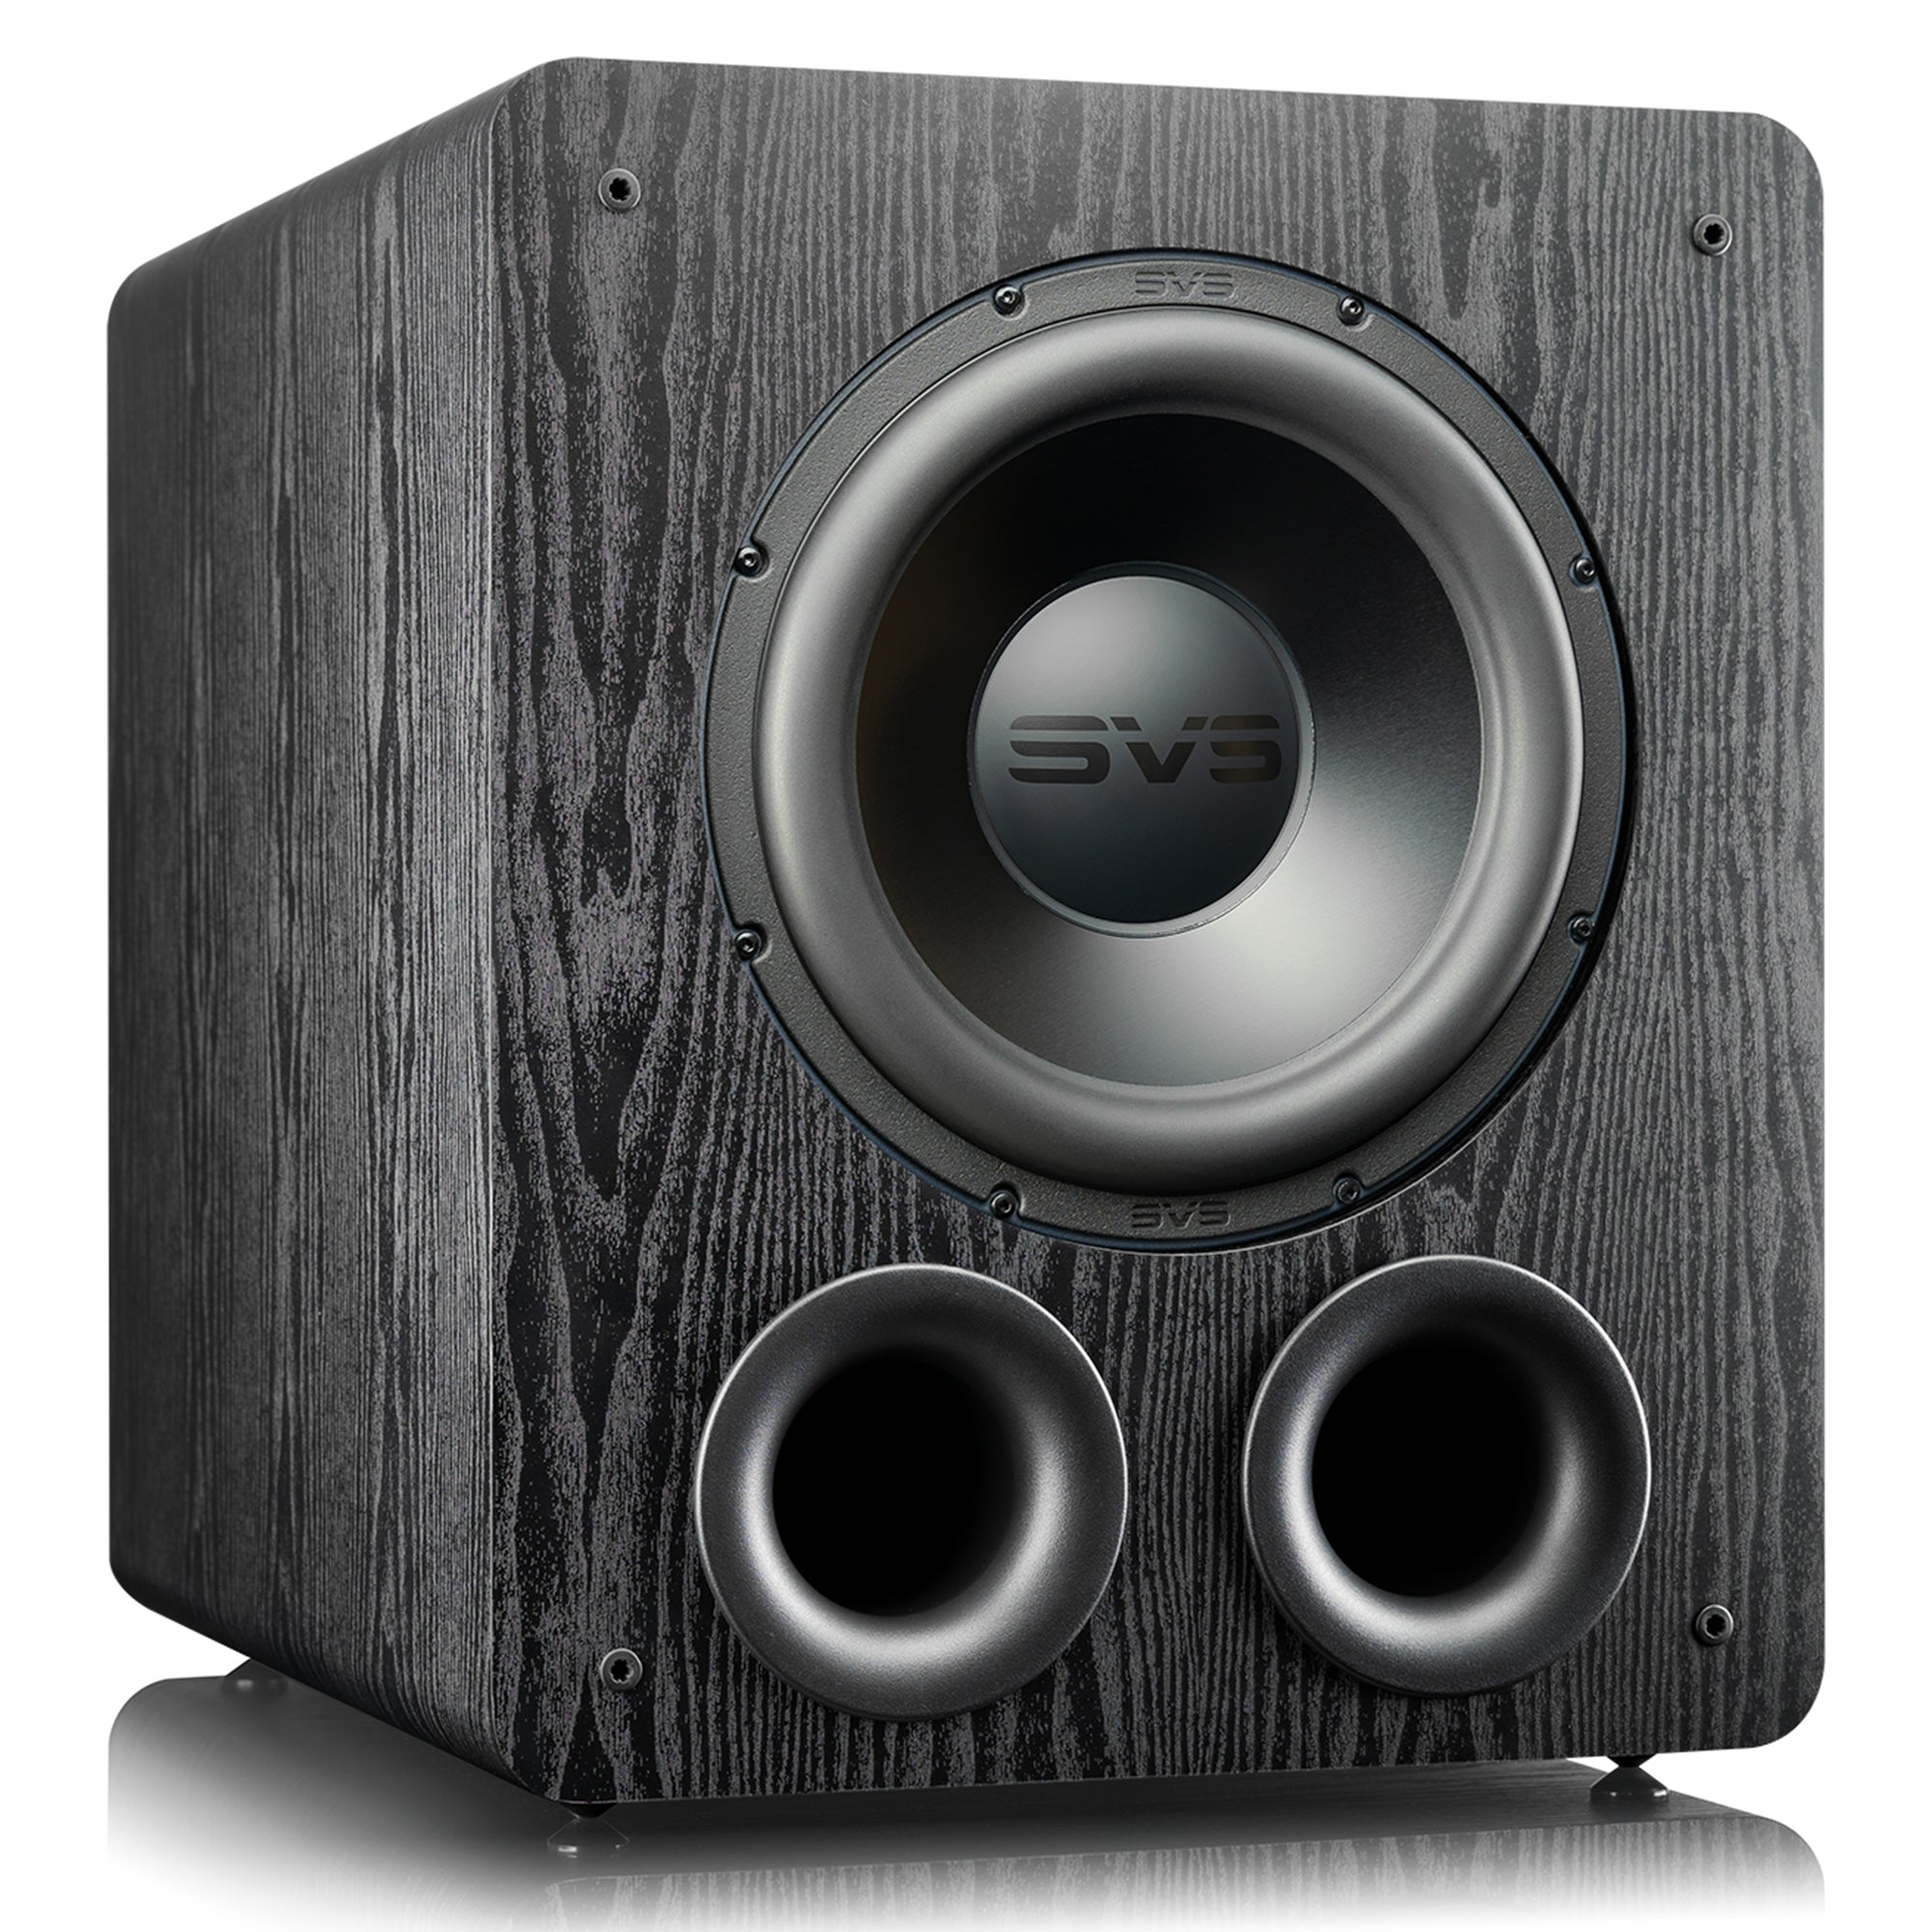 SVS PB-2000 Pro Series Ported Box Home Subwoofer